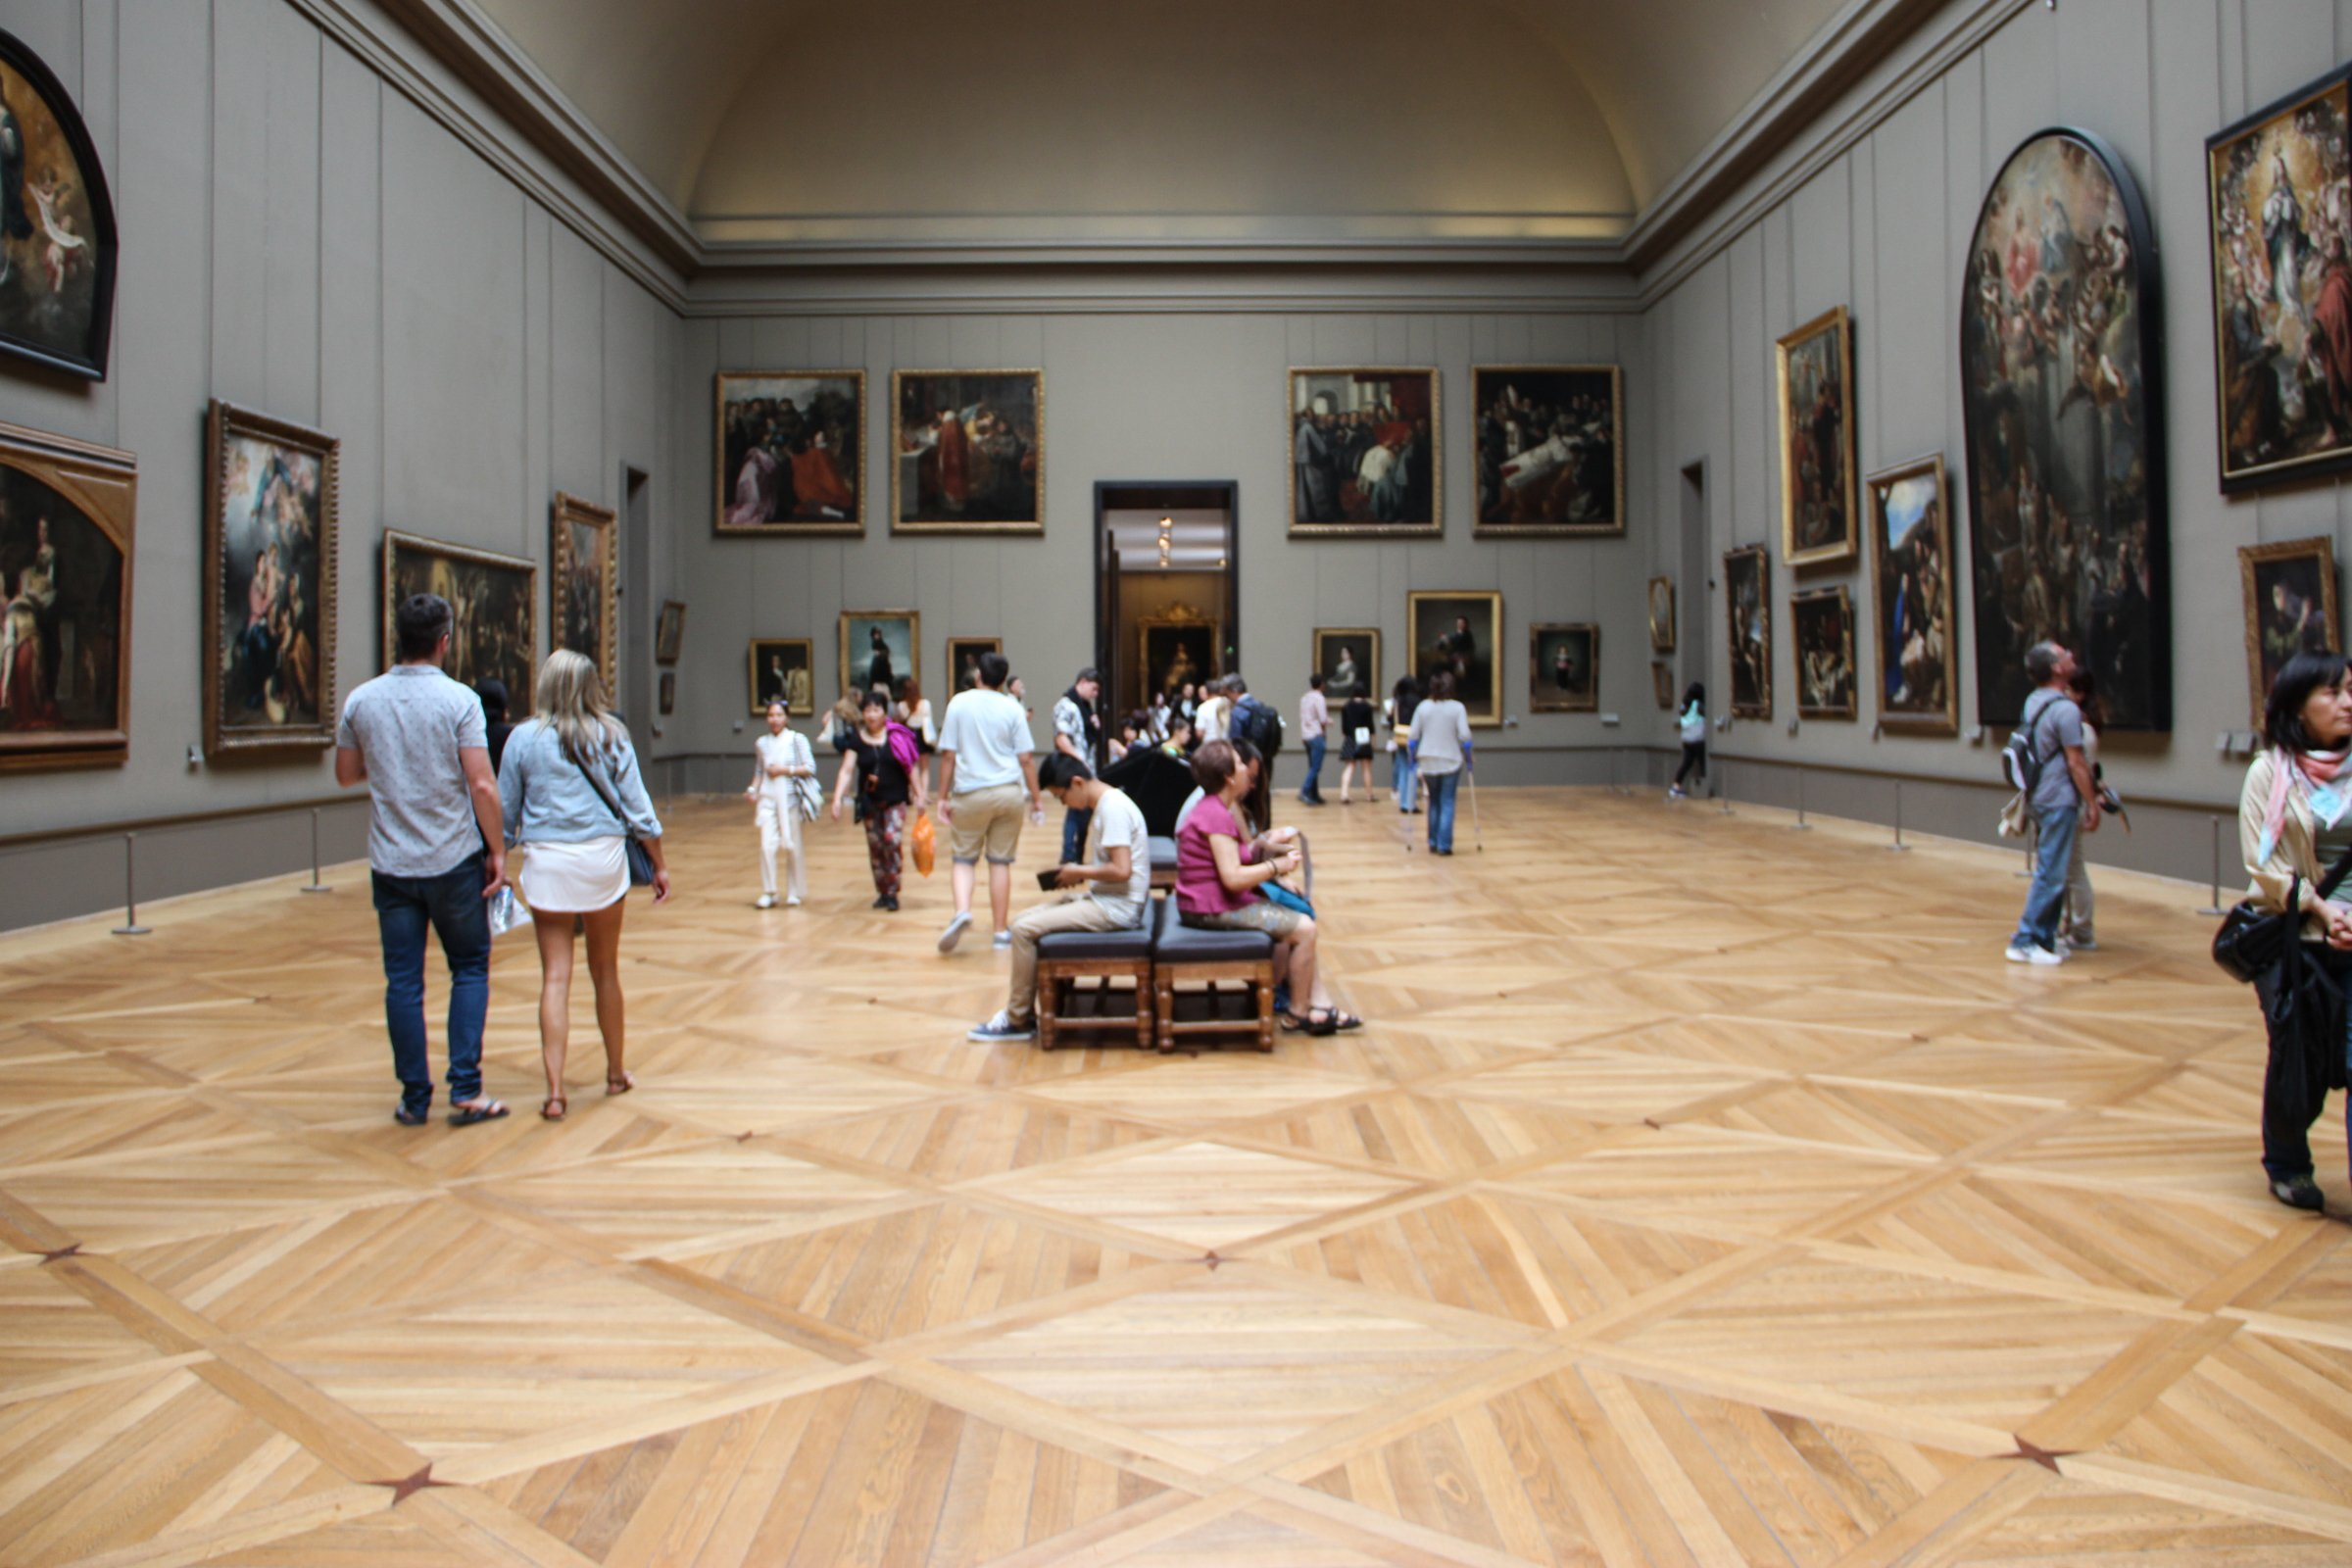 Free Stock Photo of People in Museum Room with Paintings